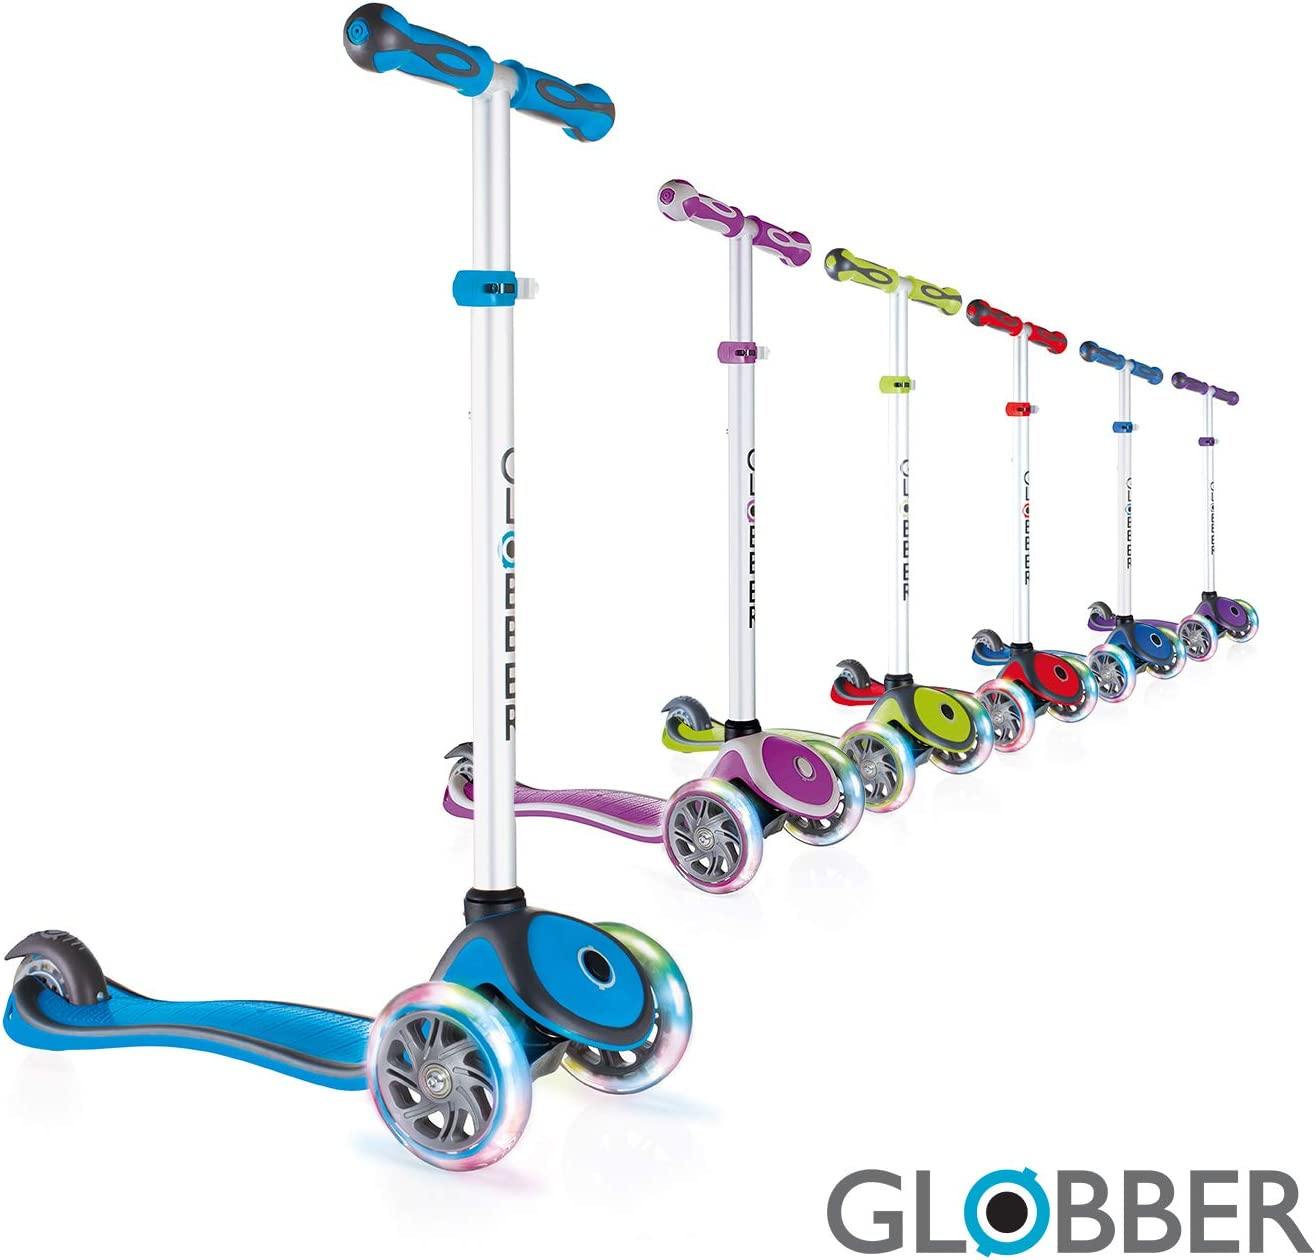 Globber V2 3-Wheel 4 Adjustable Height Scooter w Flashing Lights Zero Assembly Learn to Steer Patented Steering Lock Great for Kids Toddlers Girls or Boys Reinforced Body Supports Up to 110lbs